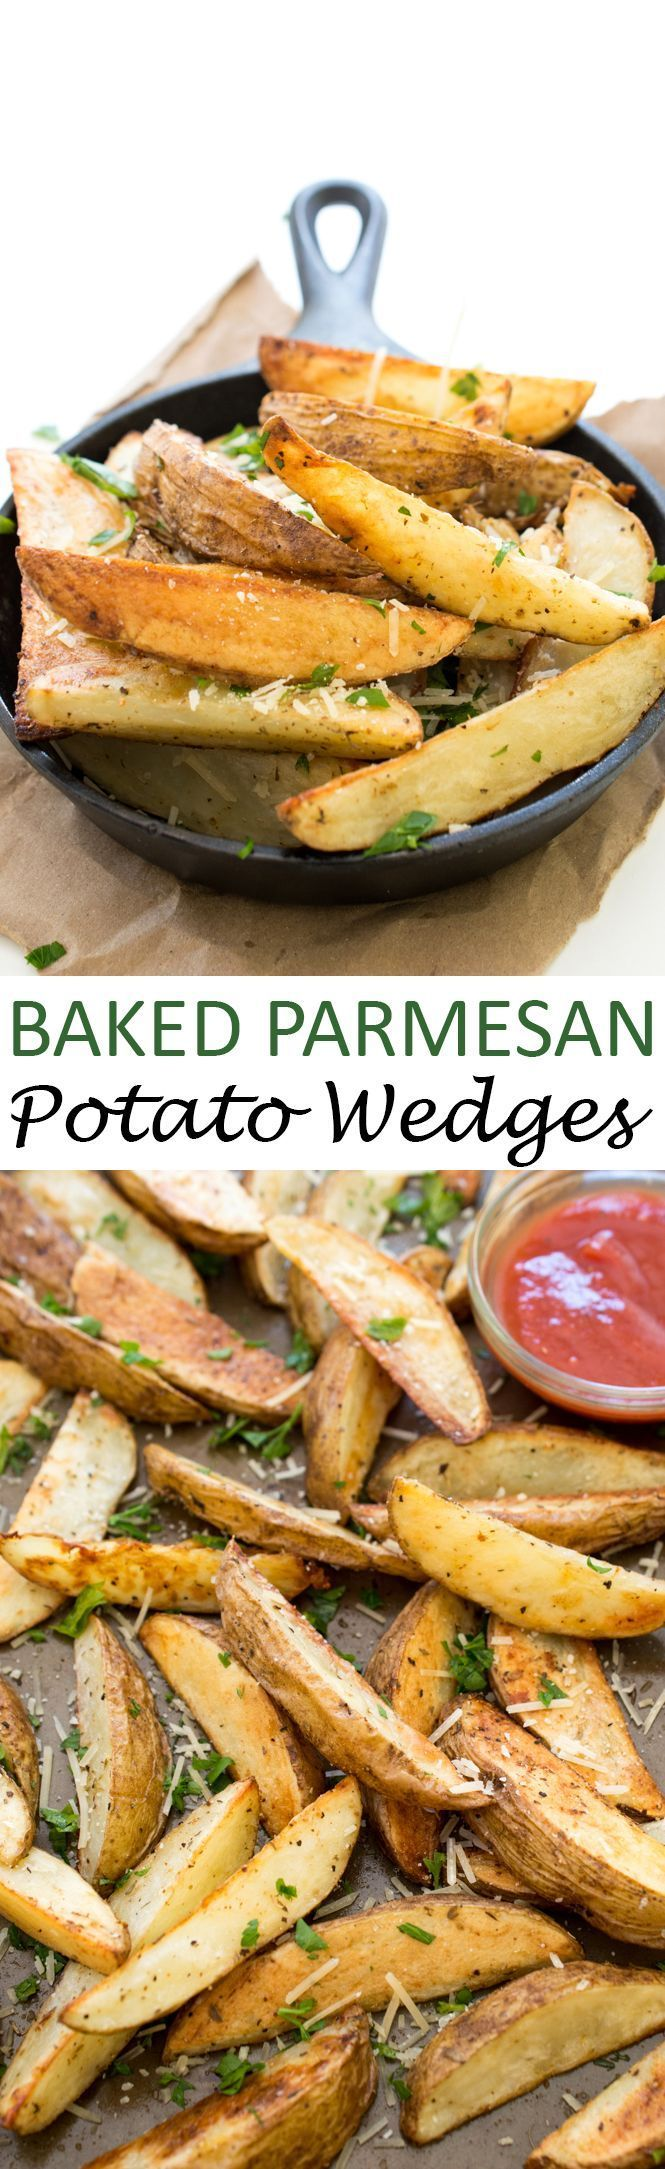 Baked Parmesan Potato Wedges. The perfect snack or side dish to complement any…